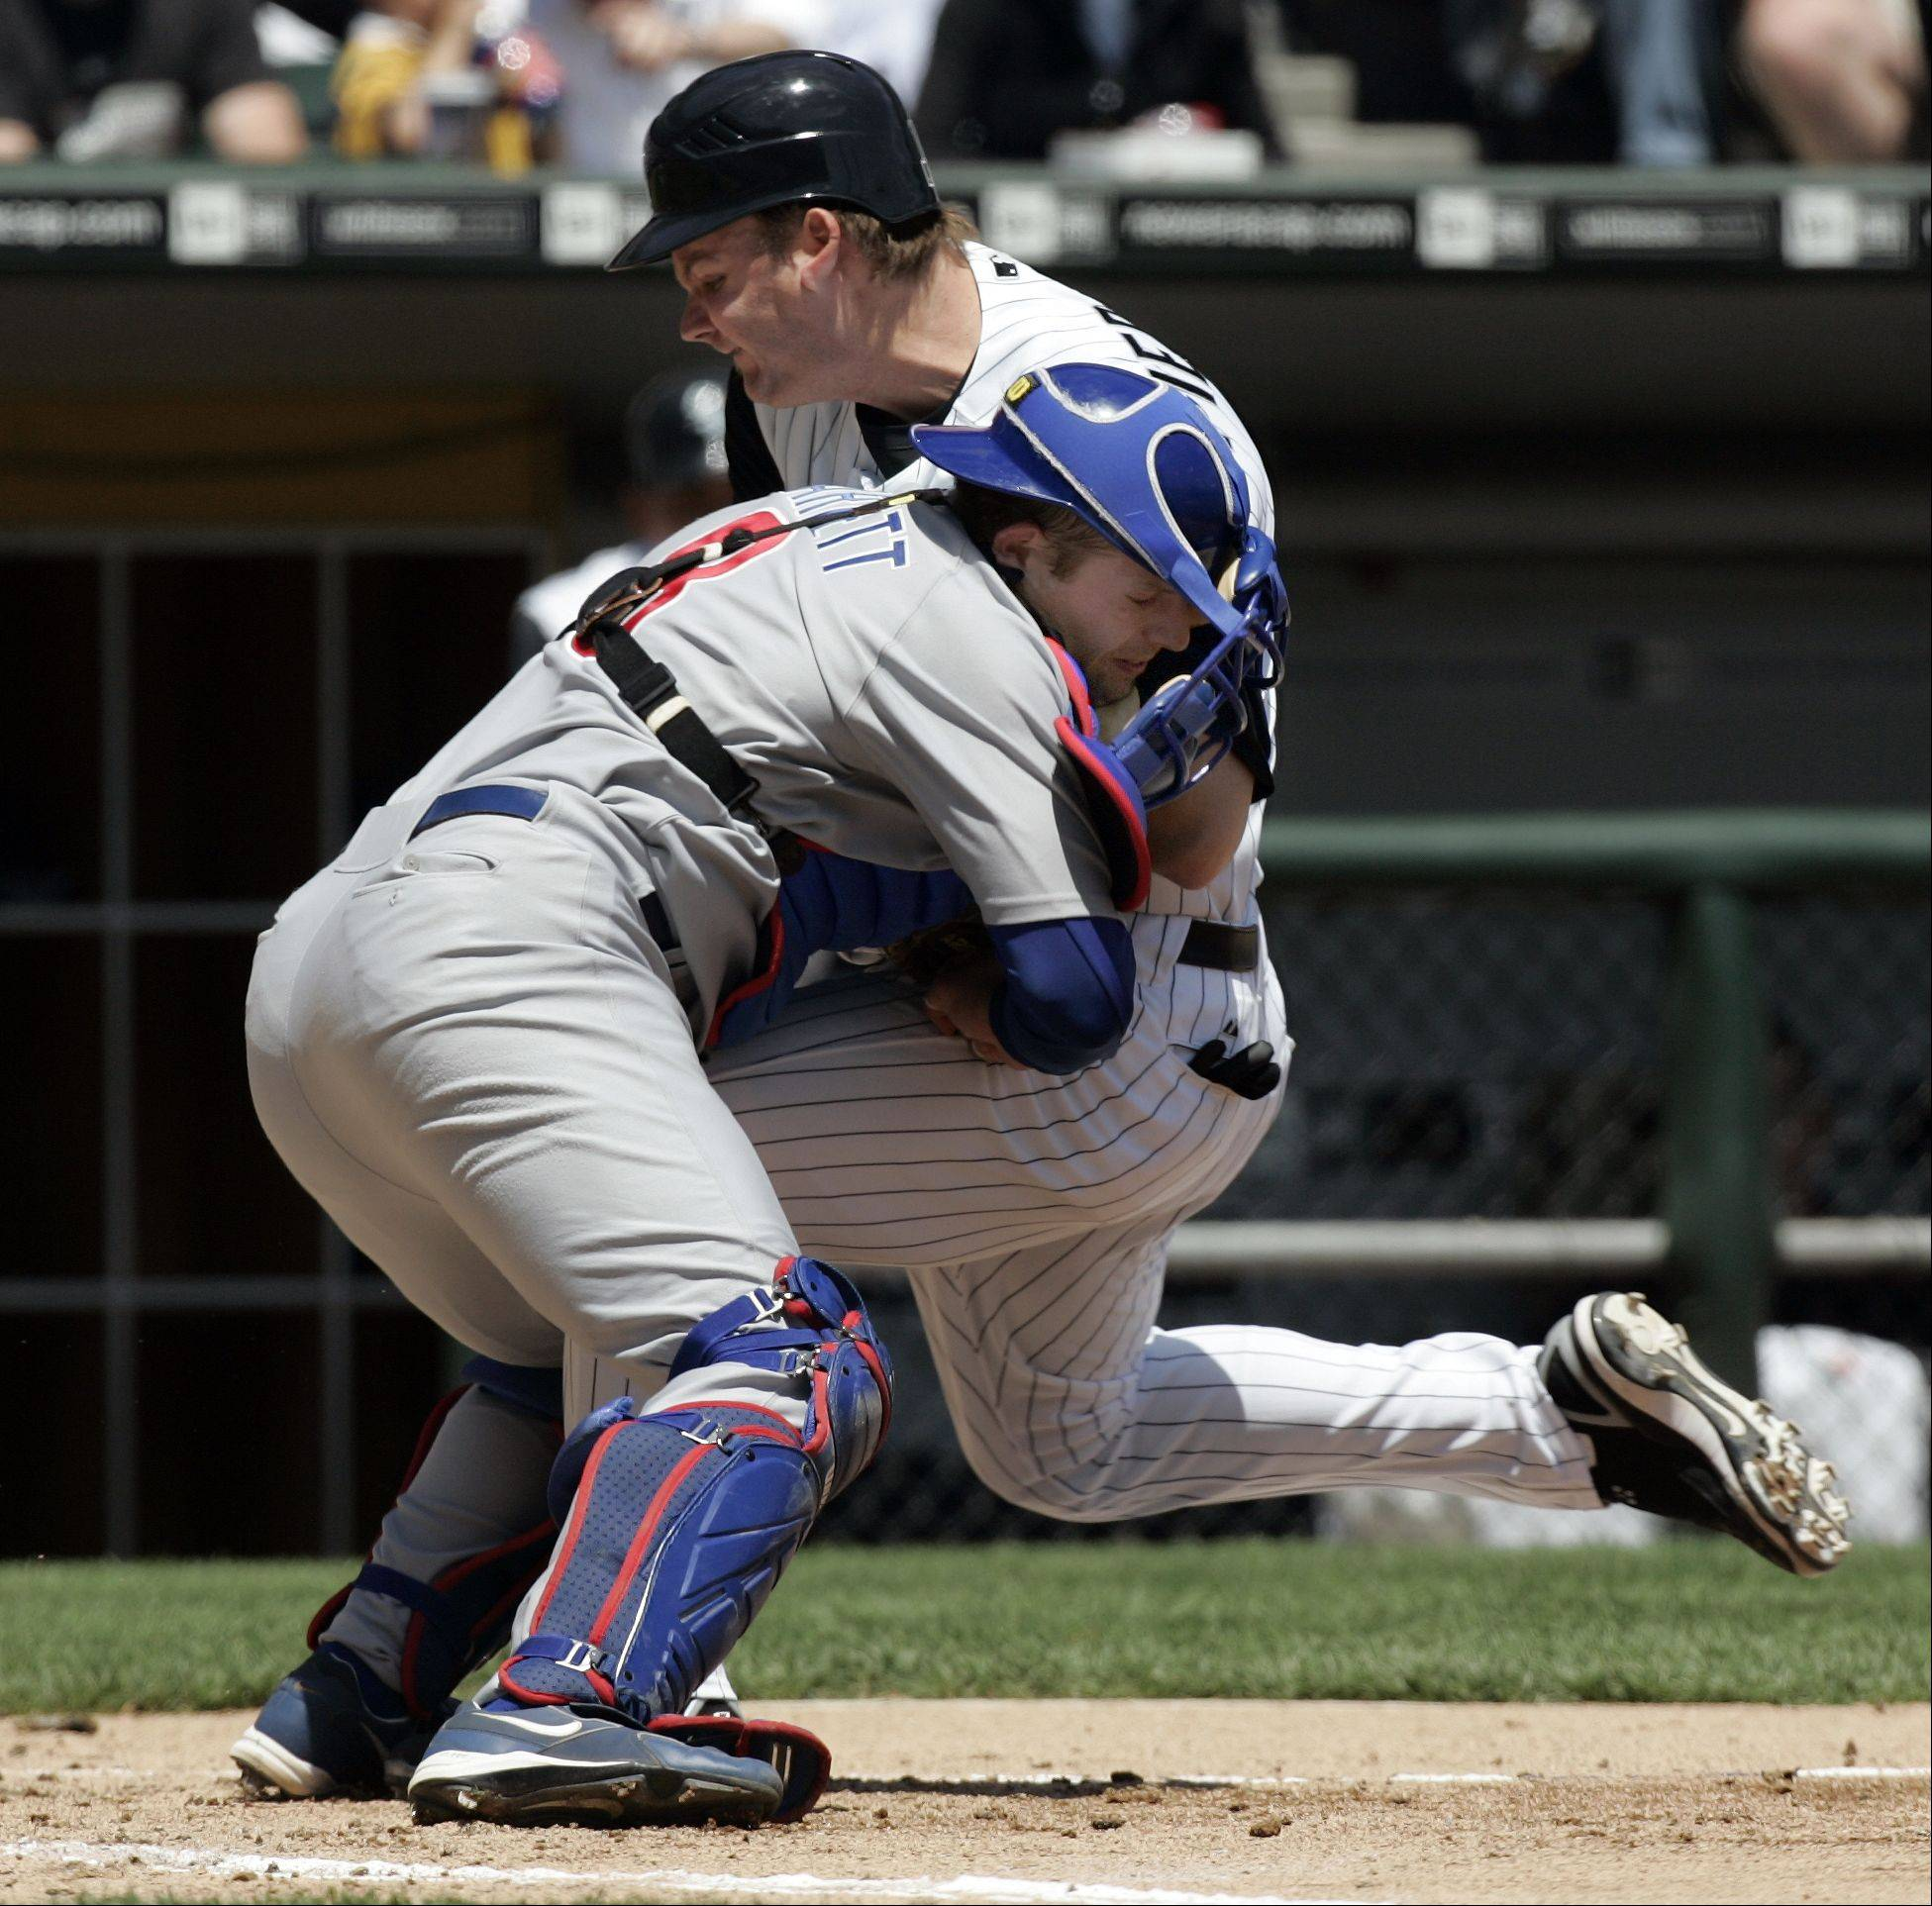 White Sox A.J. Pierzynski collides with Cubs catcher Michael Barrett in the 2nd inning, Game Two Chicago White Sox Vs Chicago Cubs at U.S. Cellular Field in Chicago. May 20, 2006.